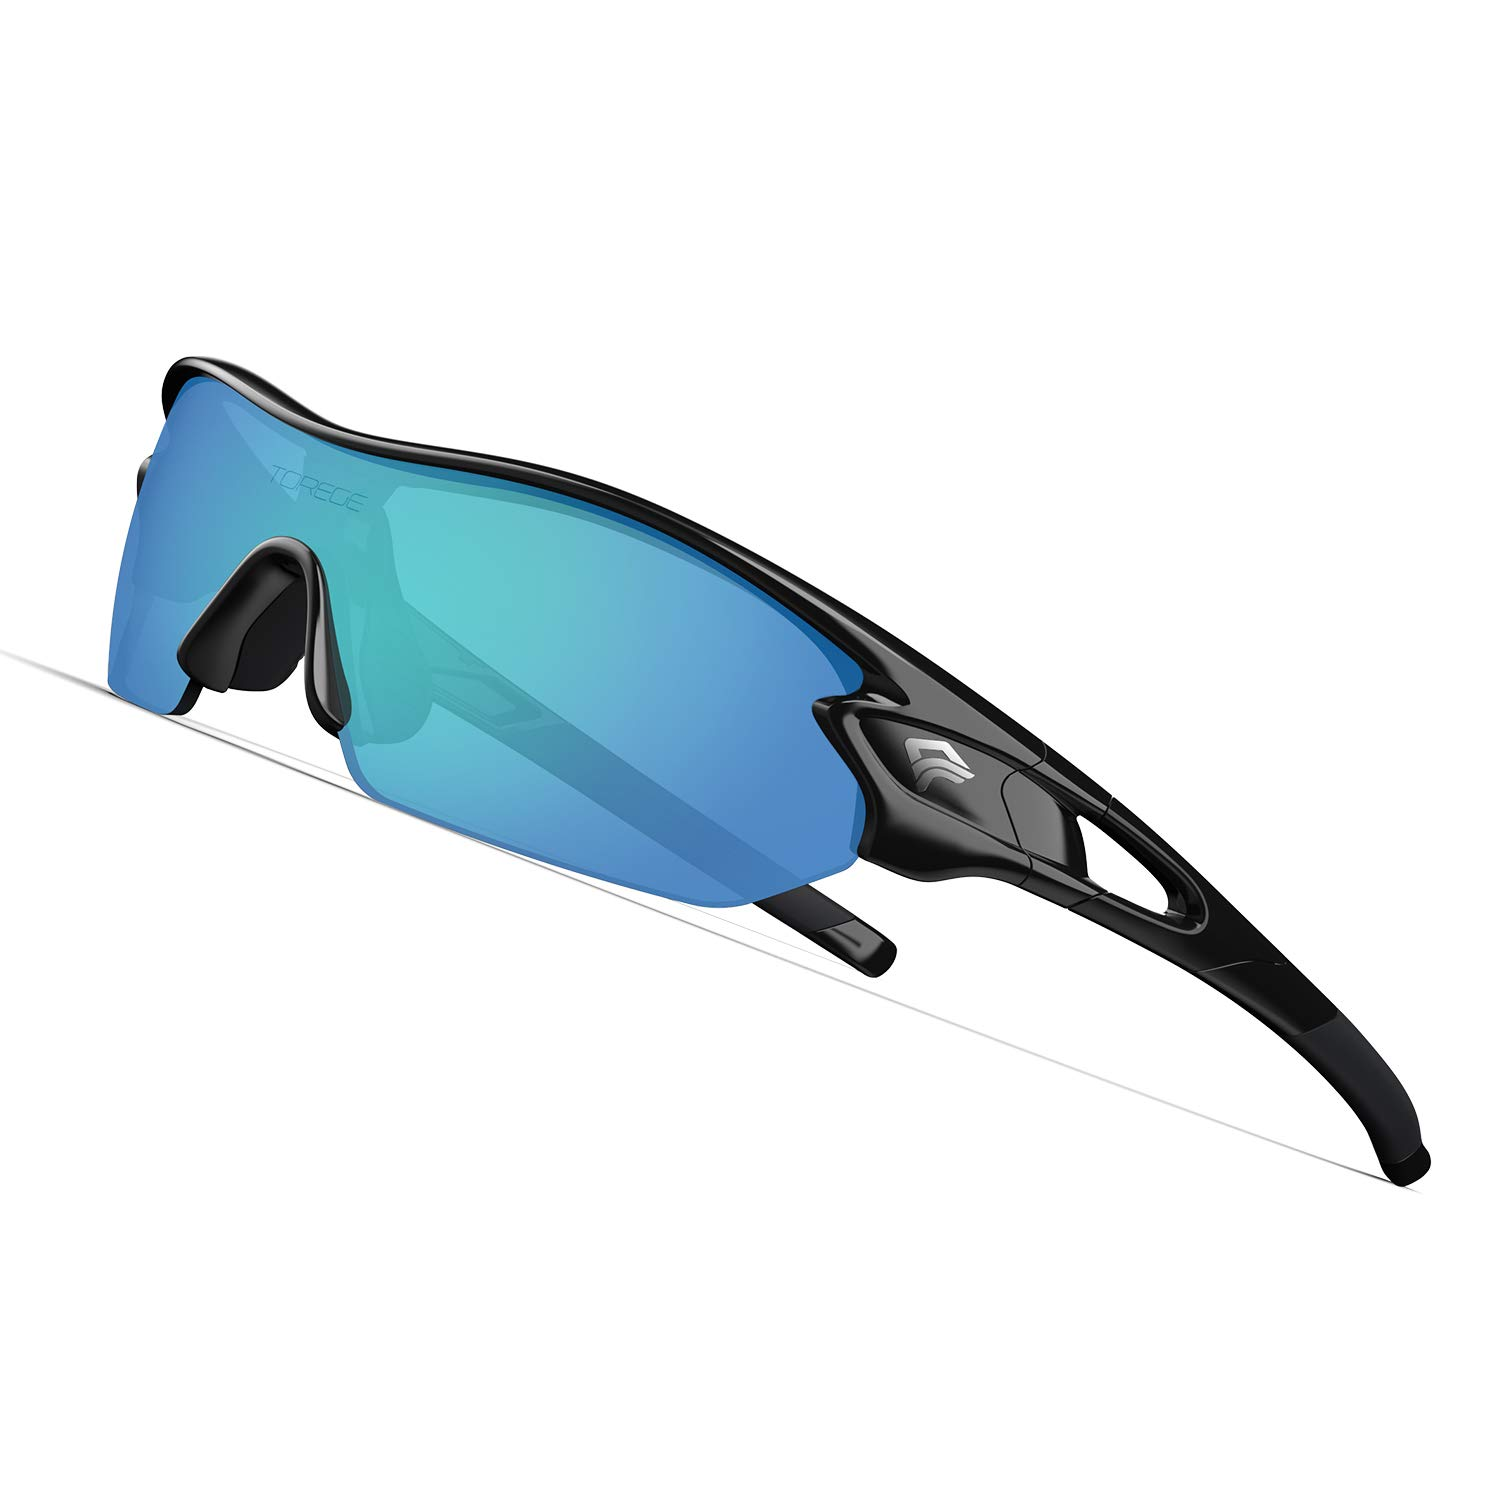 TOREGE Polarized Sports Sunglasses with 5 Interchangeable Lenes for Men Women Cycling Running Driving Fishing Golf Baseball Glasses TR002 (Black&Ice Blue Lens) by TOREGE